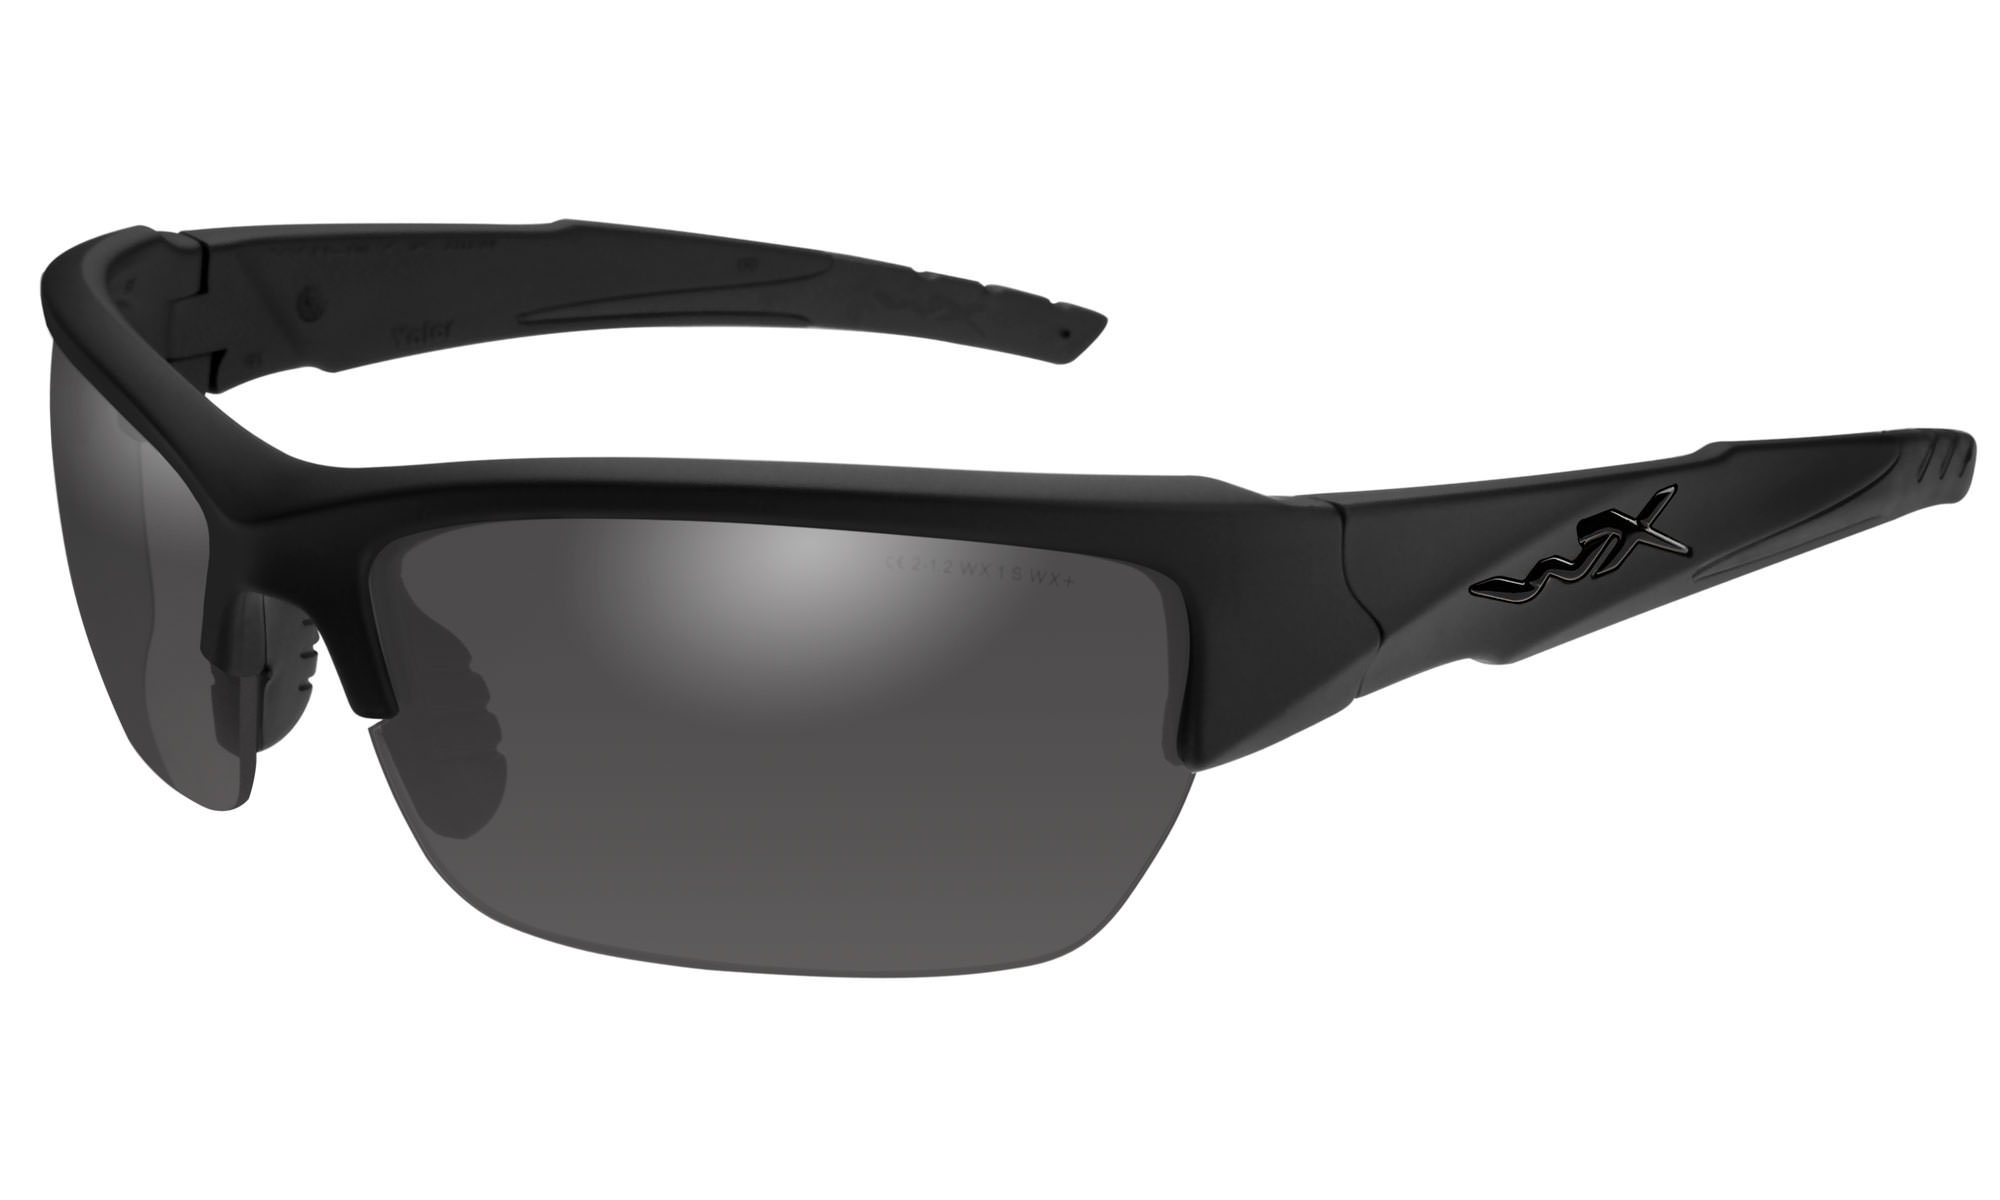 ba424b5ef9f9 Wiley-X WX Valor Matte Black with Smoke Grey Lenses | Wiley X